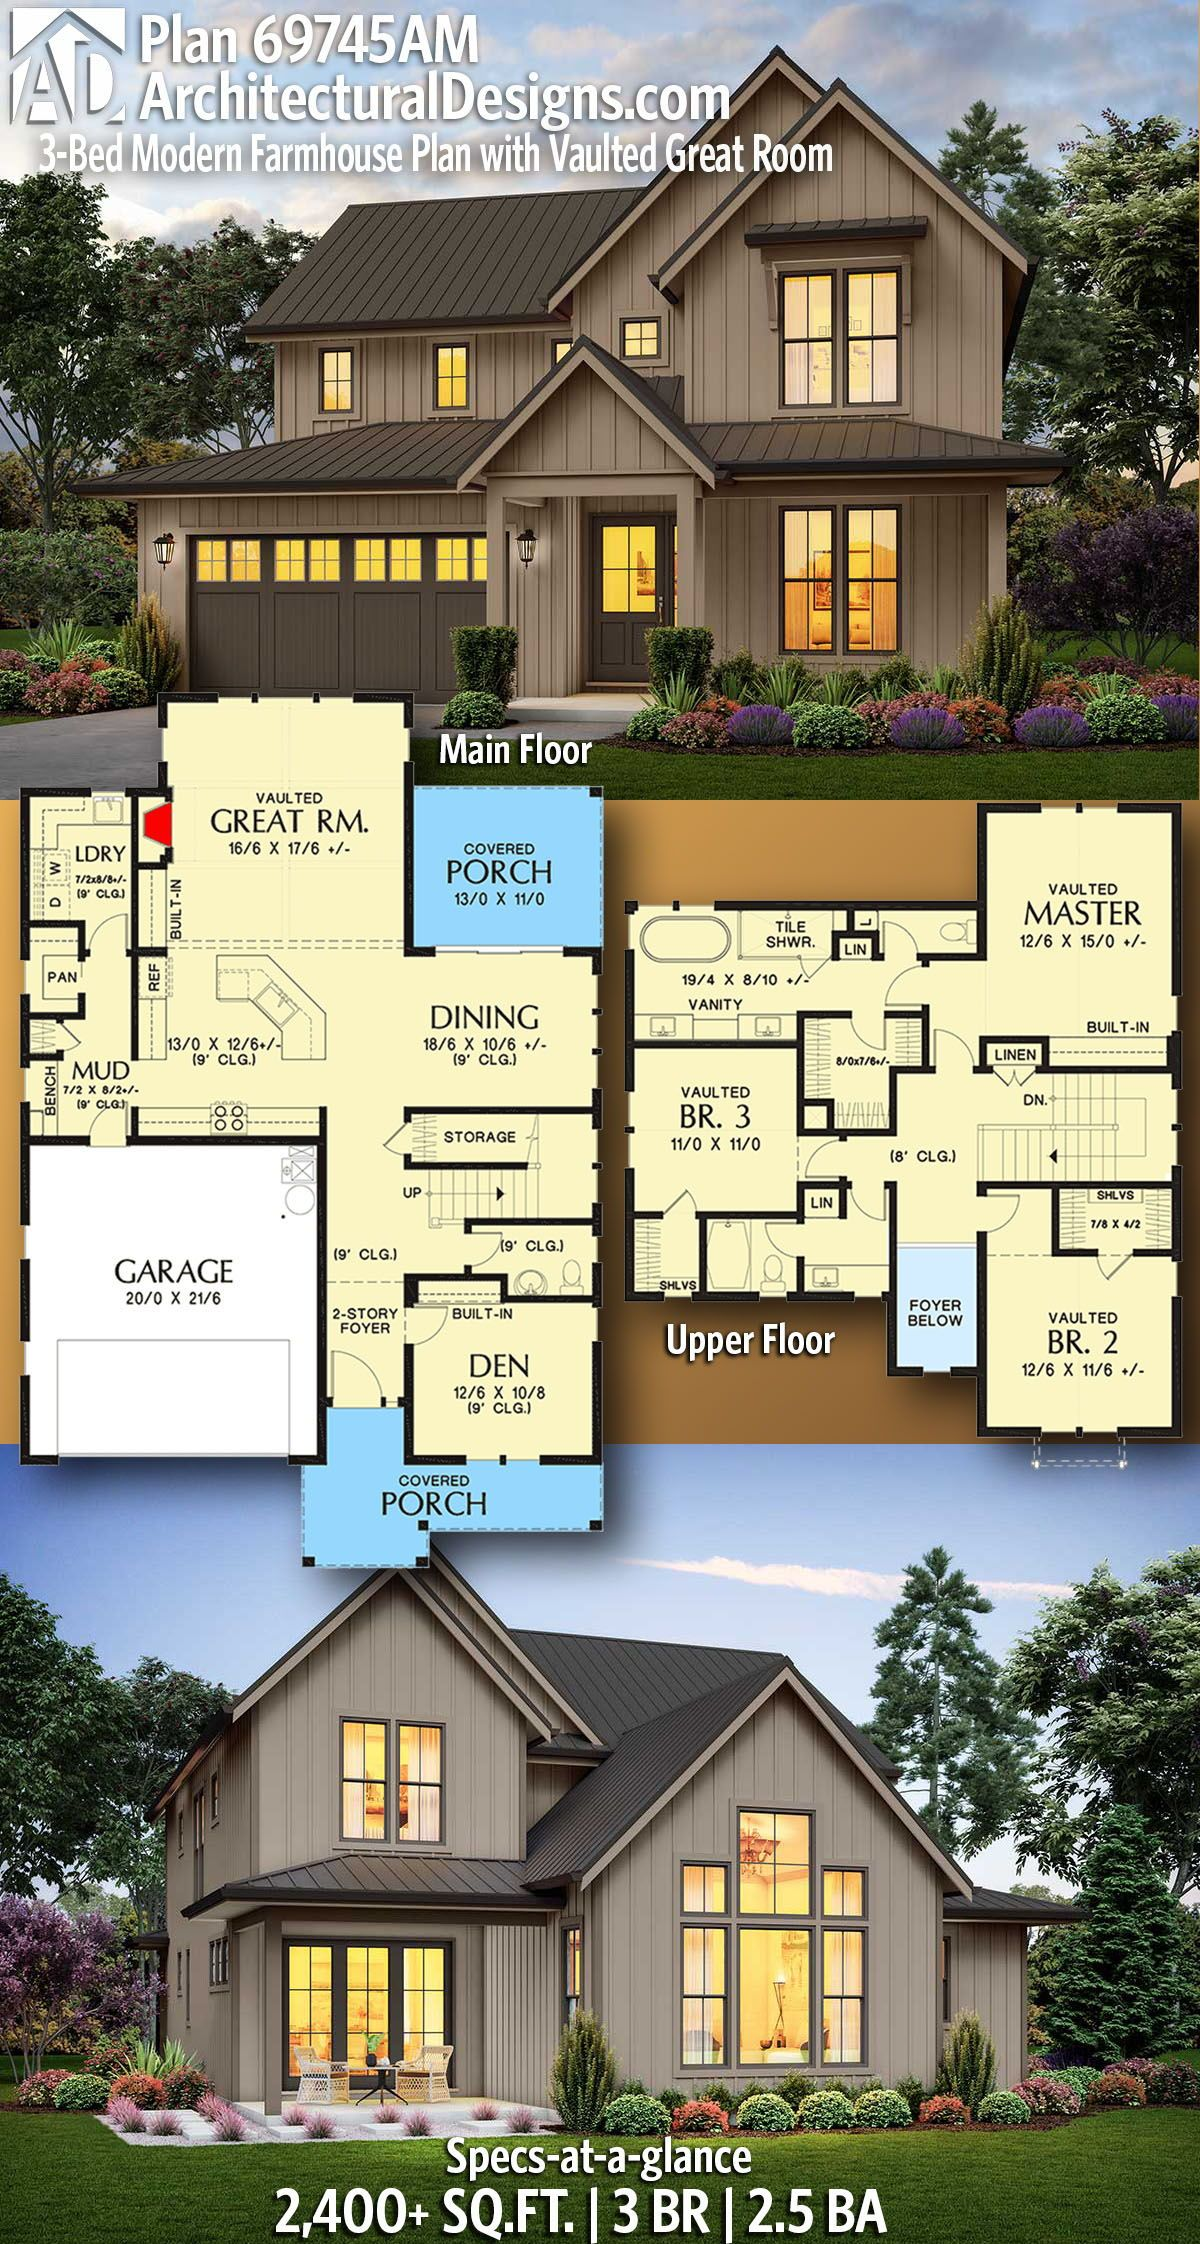 Plan 69745am 3 Bed Modern Farmhouse Plan With Vaulted Great Room Modern Farmhouse Plans Farmhouse Plans House Blueprints